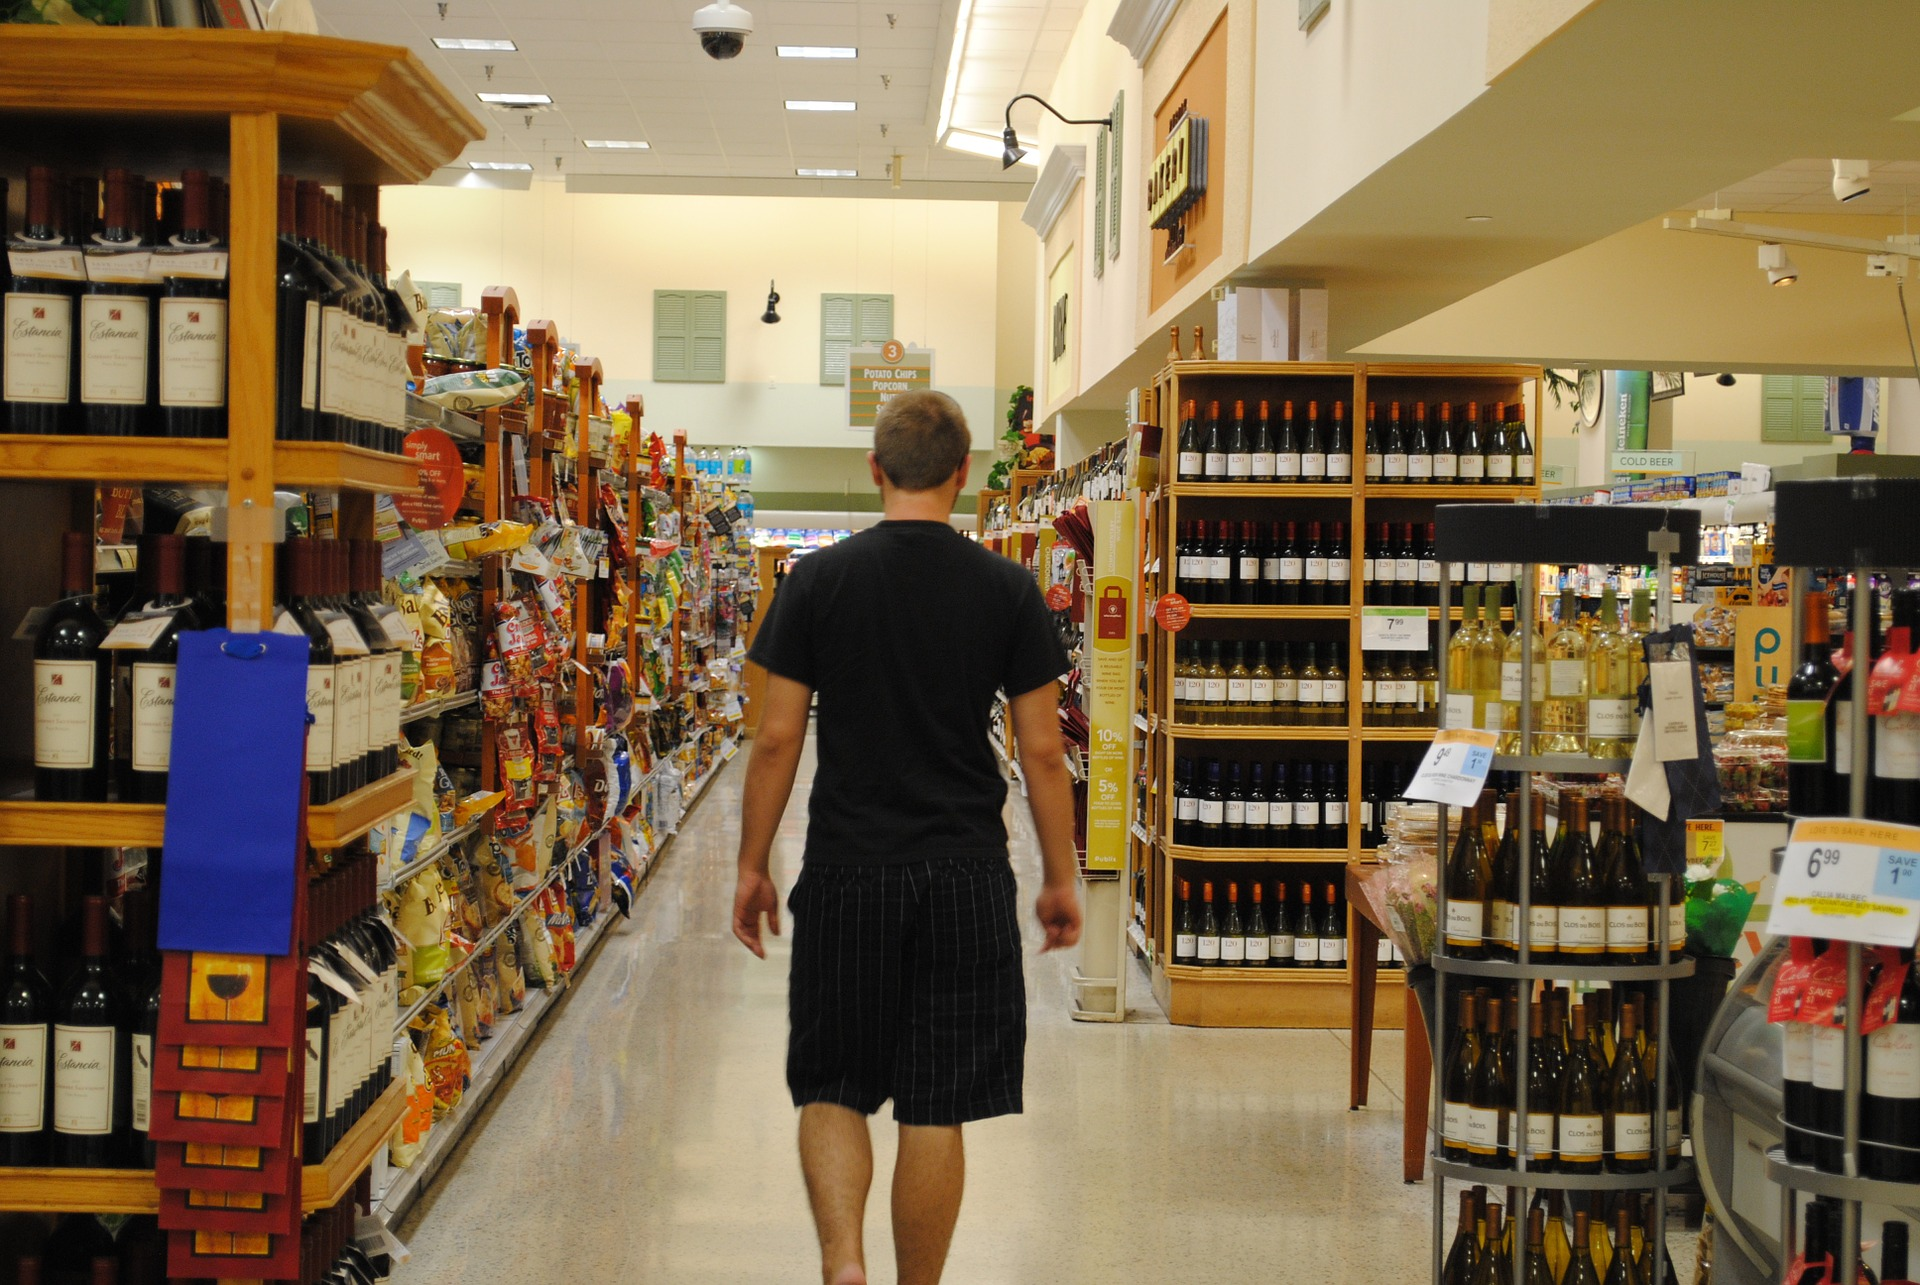 Can A Grocery Store Ban A Customer?